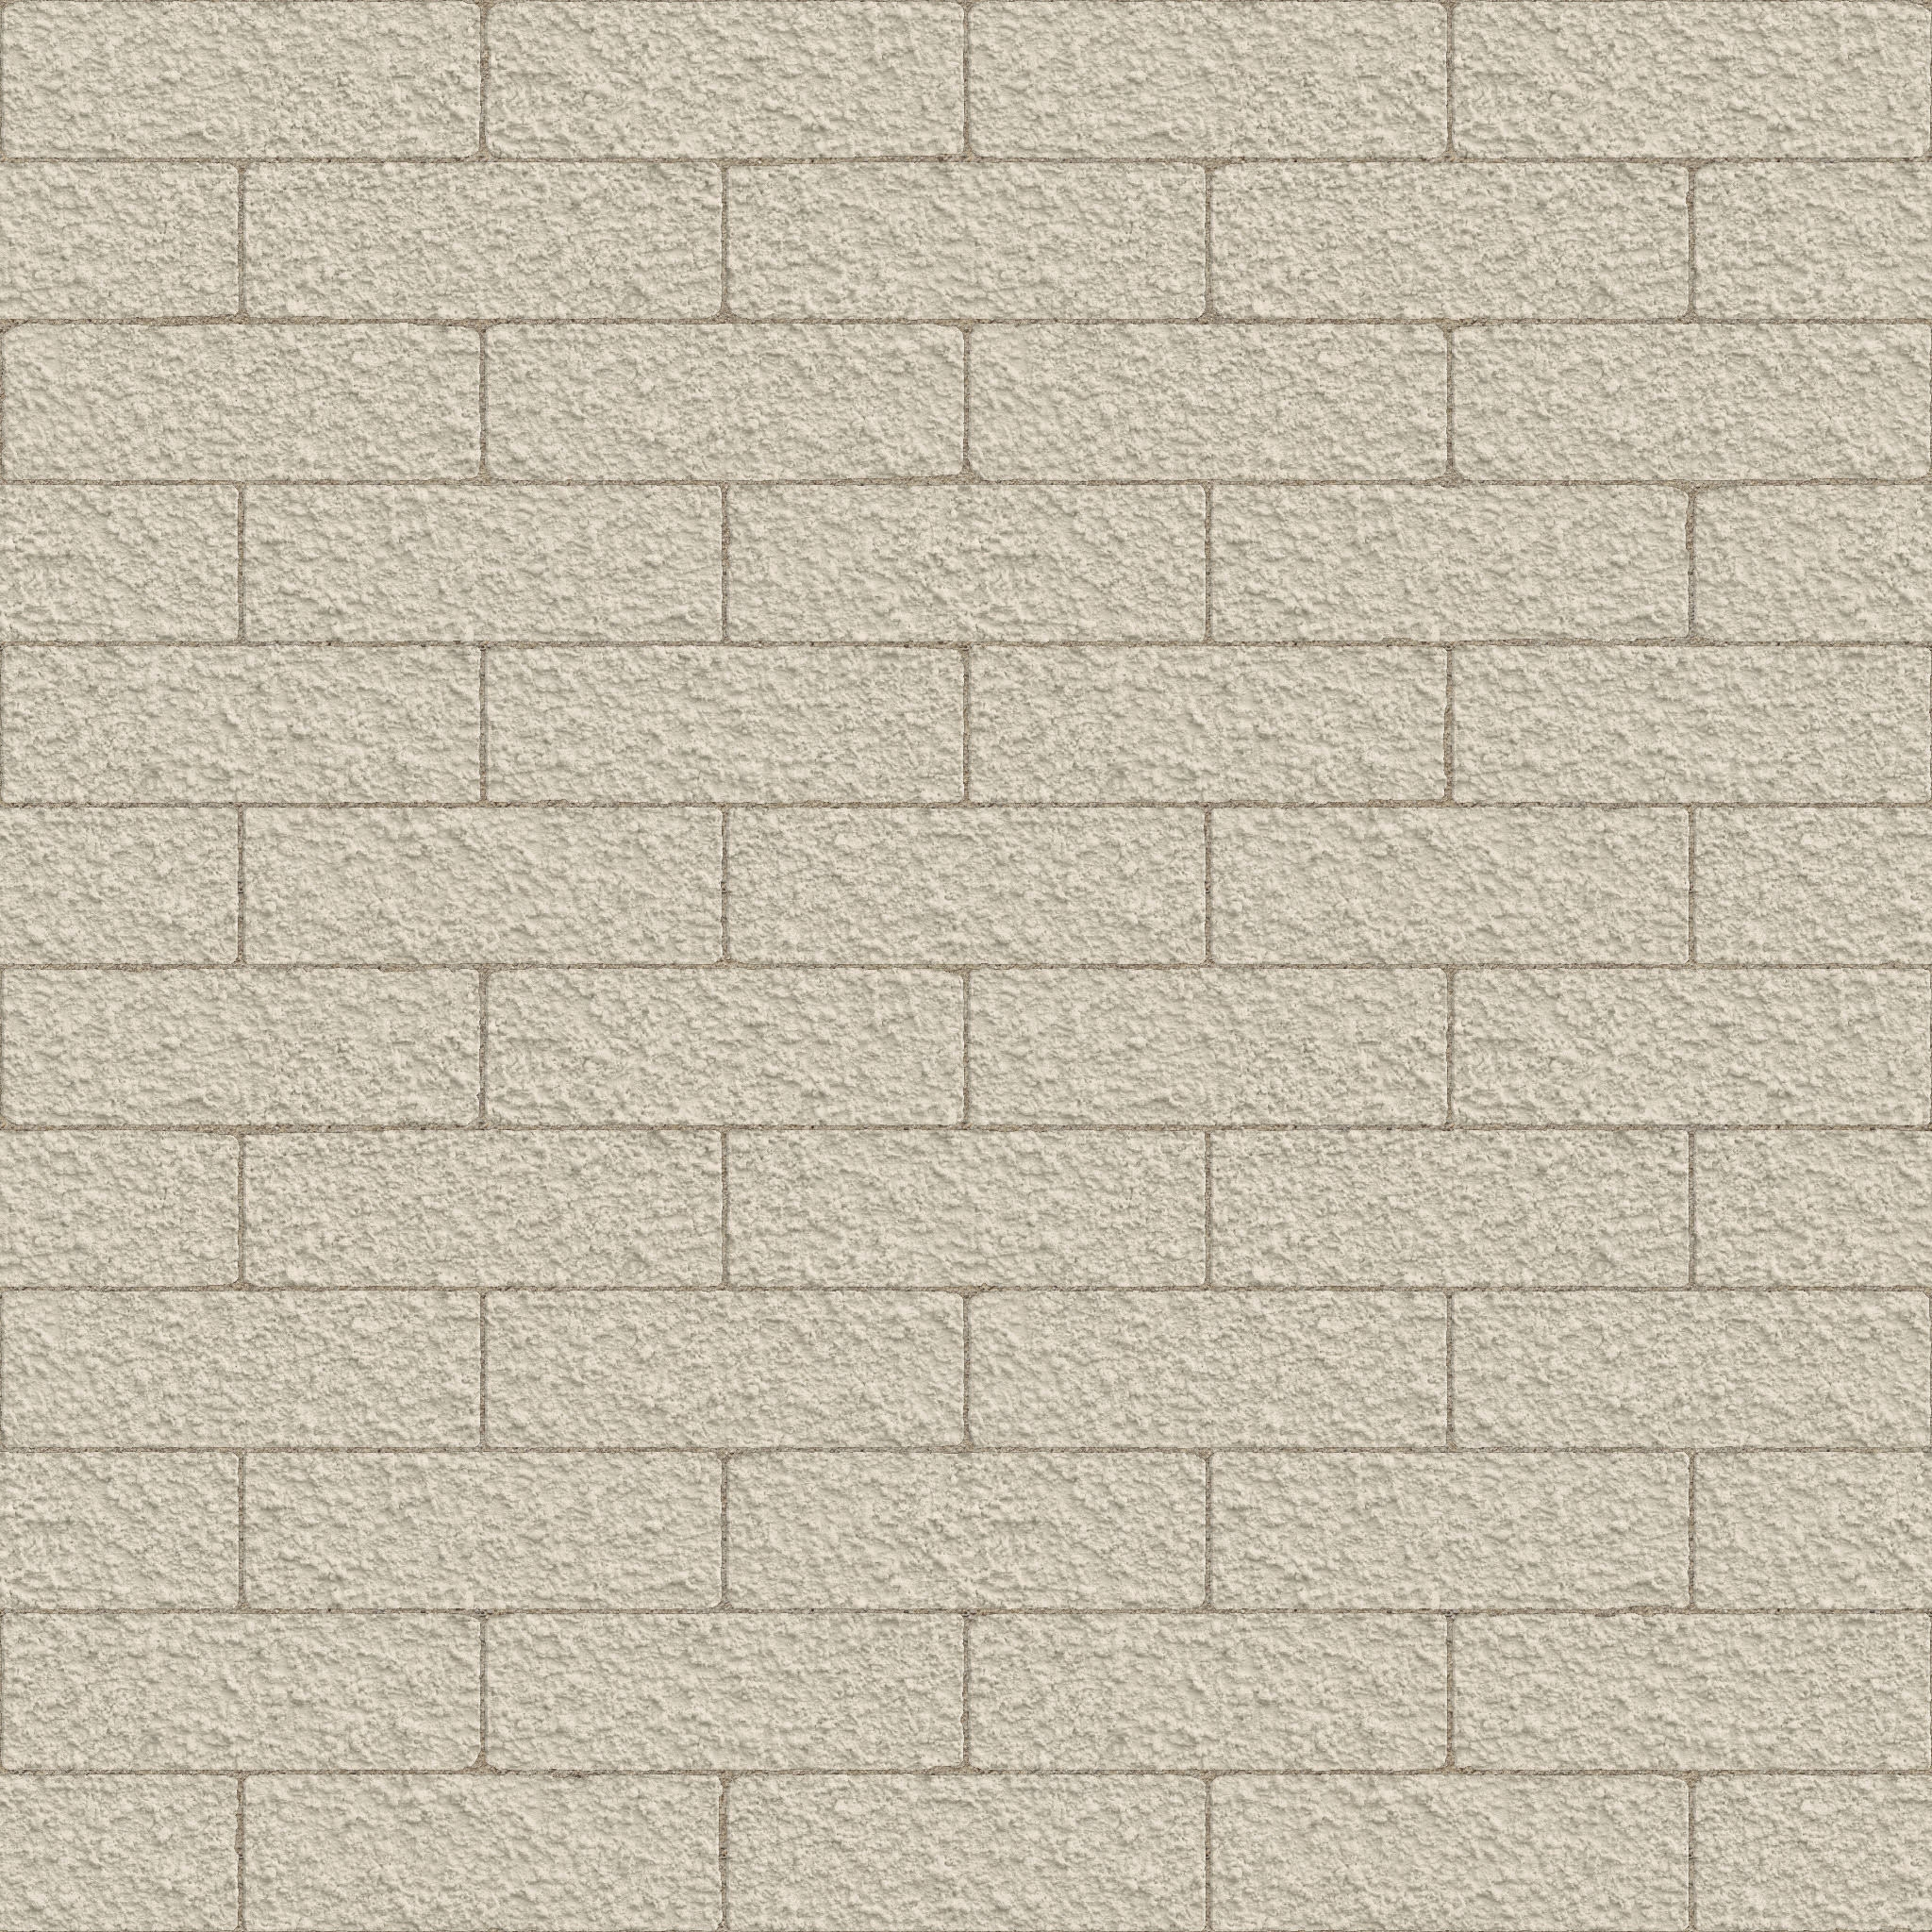 Kitchen Wall Texture Seamless Seamless White Wall Texture